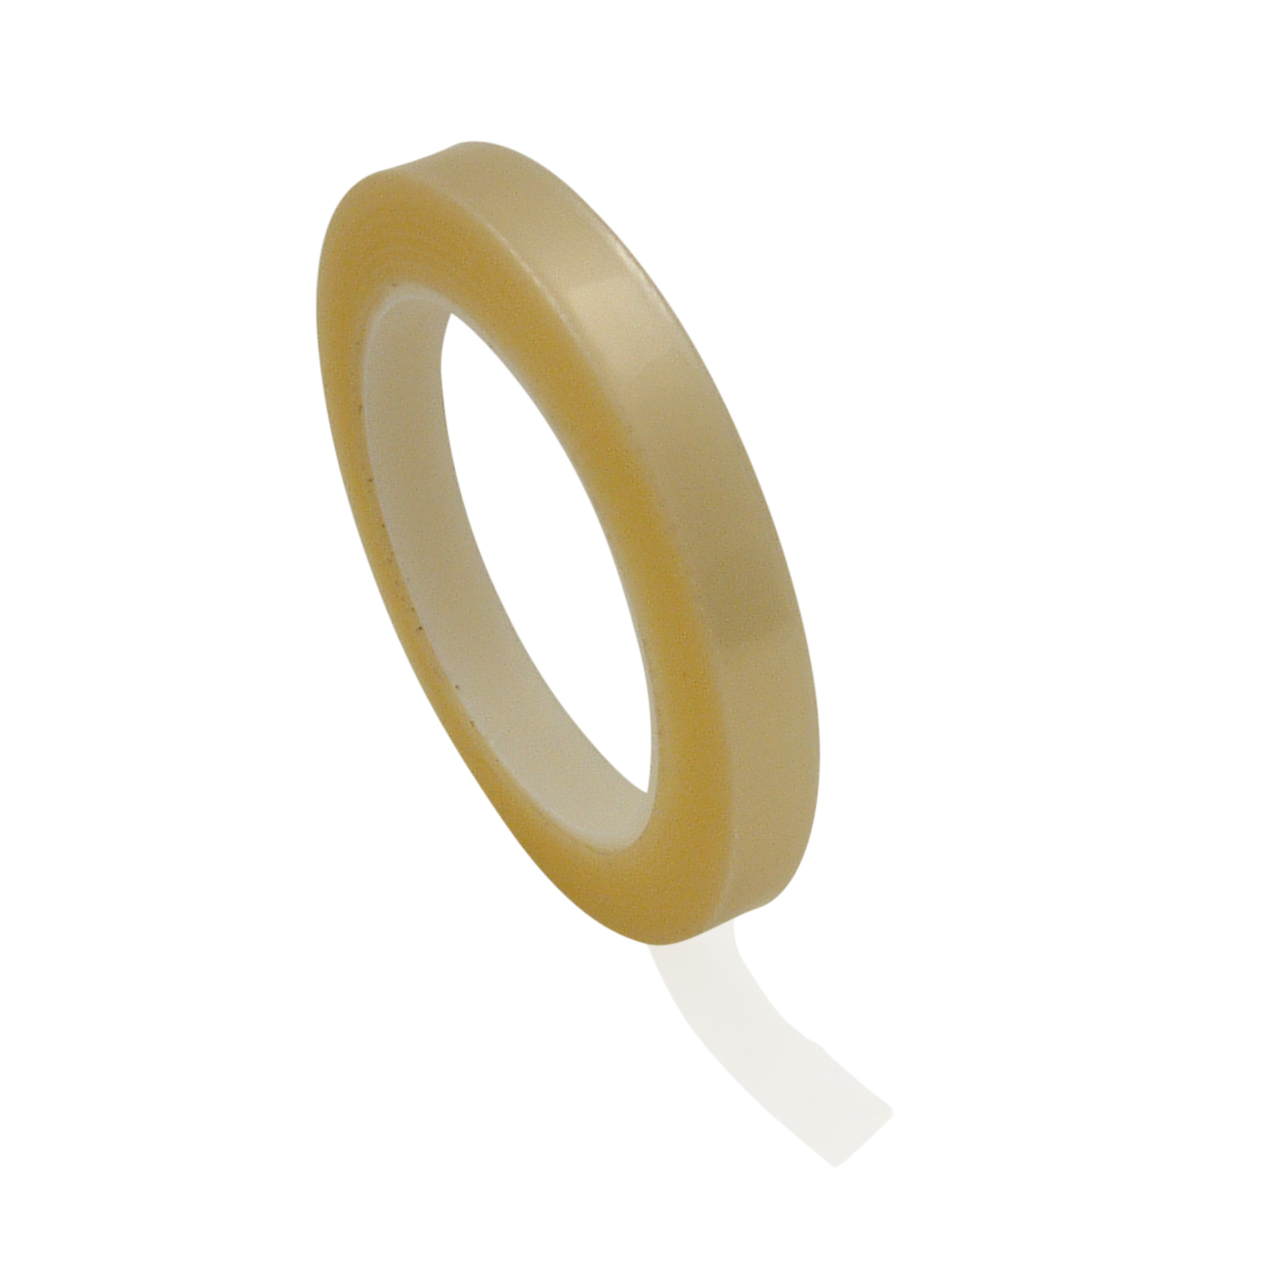 Splicing Tape Jvcc Ppt 25c Polyester Circuit Plating Silicone Splicing Tape 1 2 In X 72 Yds Clear